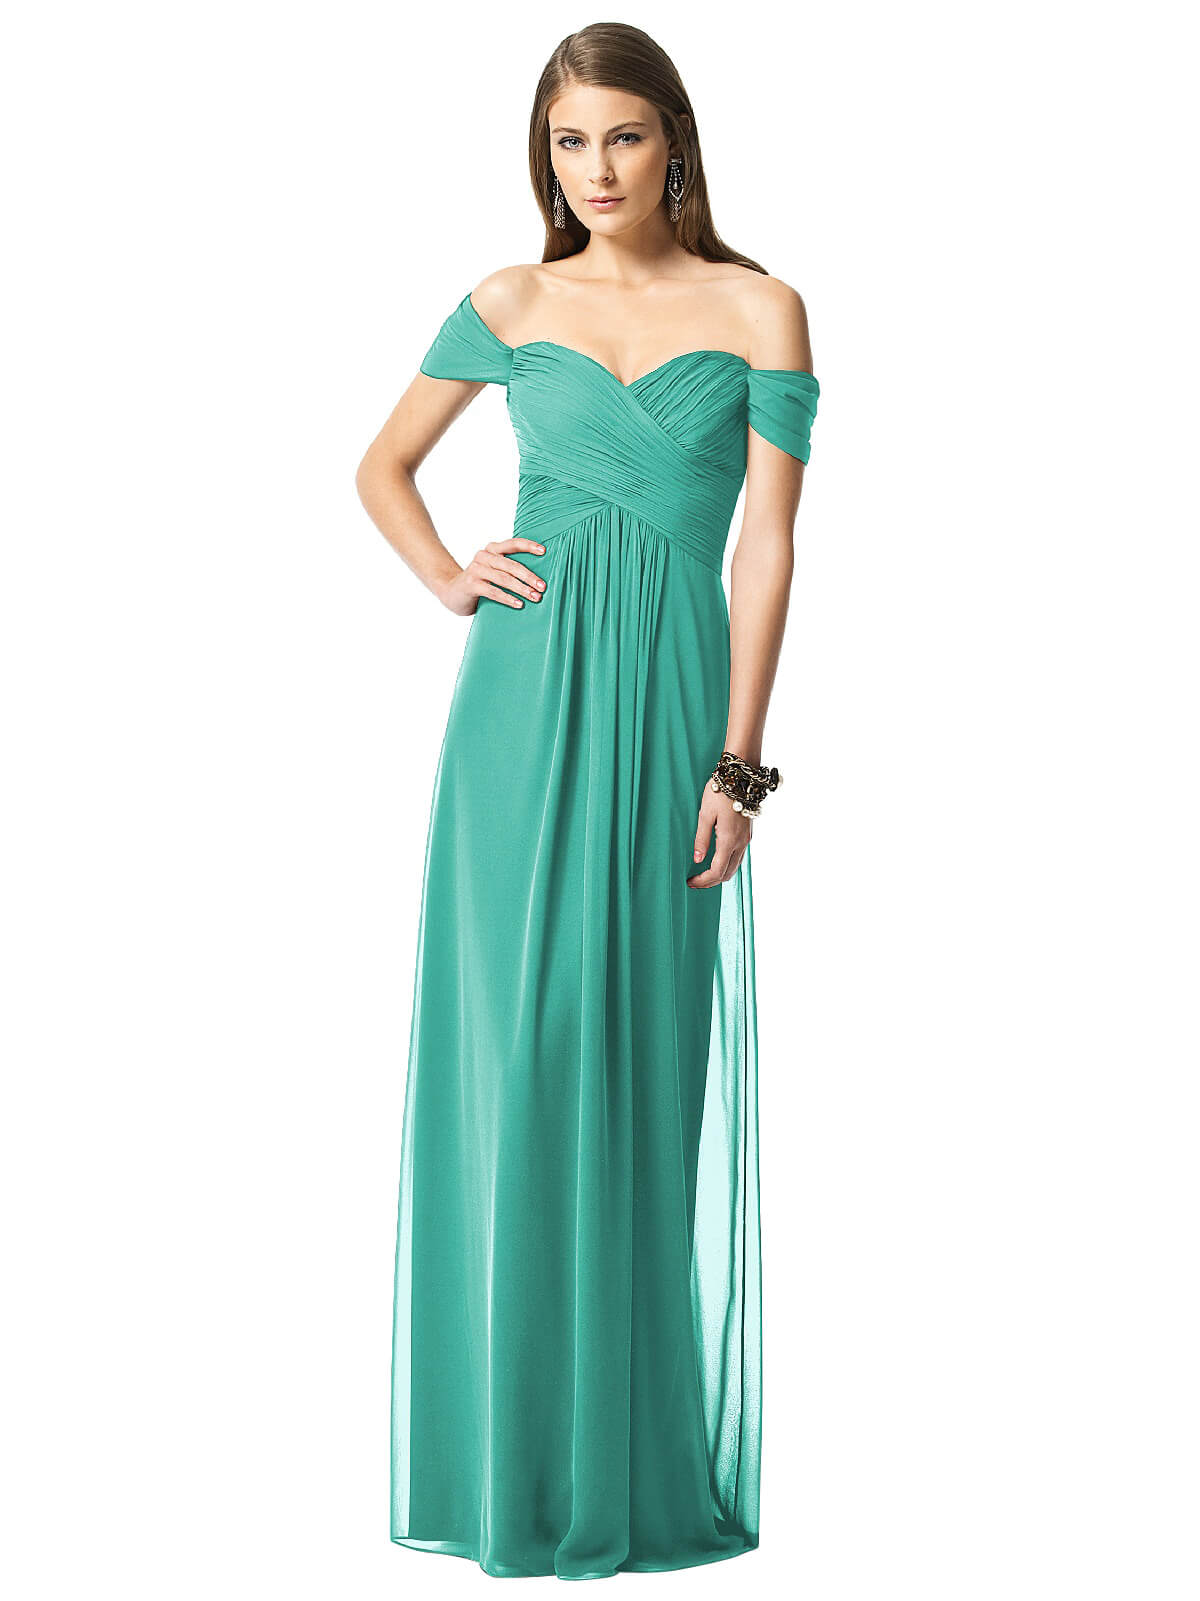 33 best picks for turquoise bridesmaid dresses everafterguide 33 most beautiful turquoise bridesmaid dresses ombrellifo Image collections